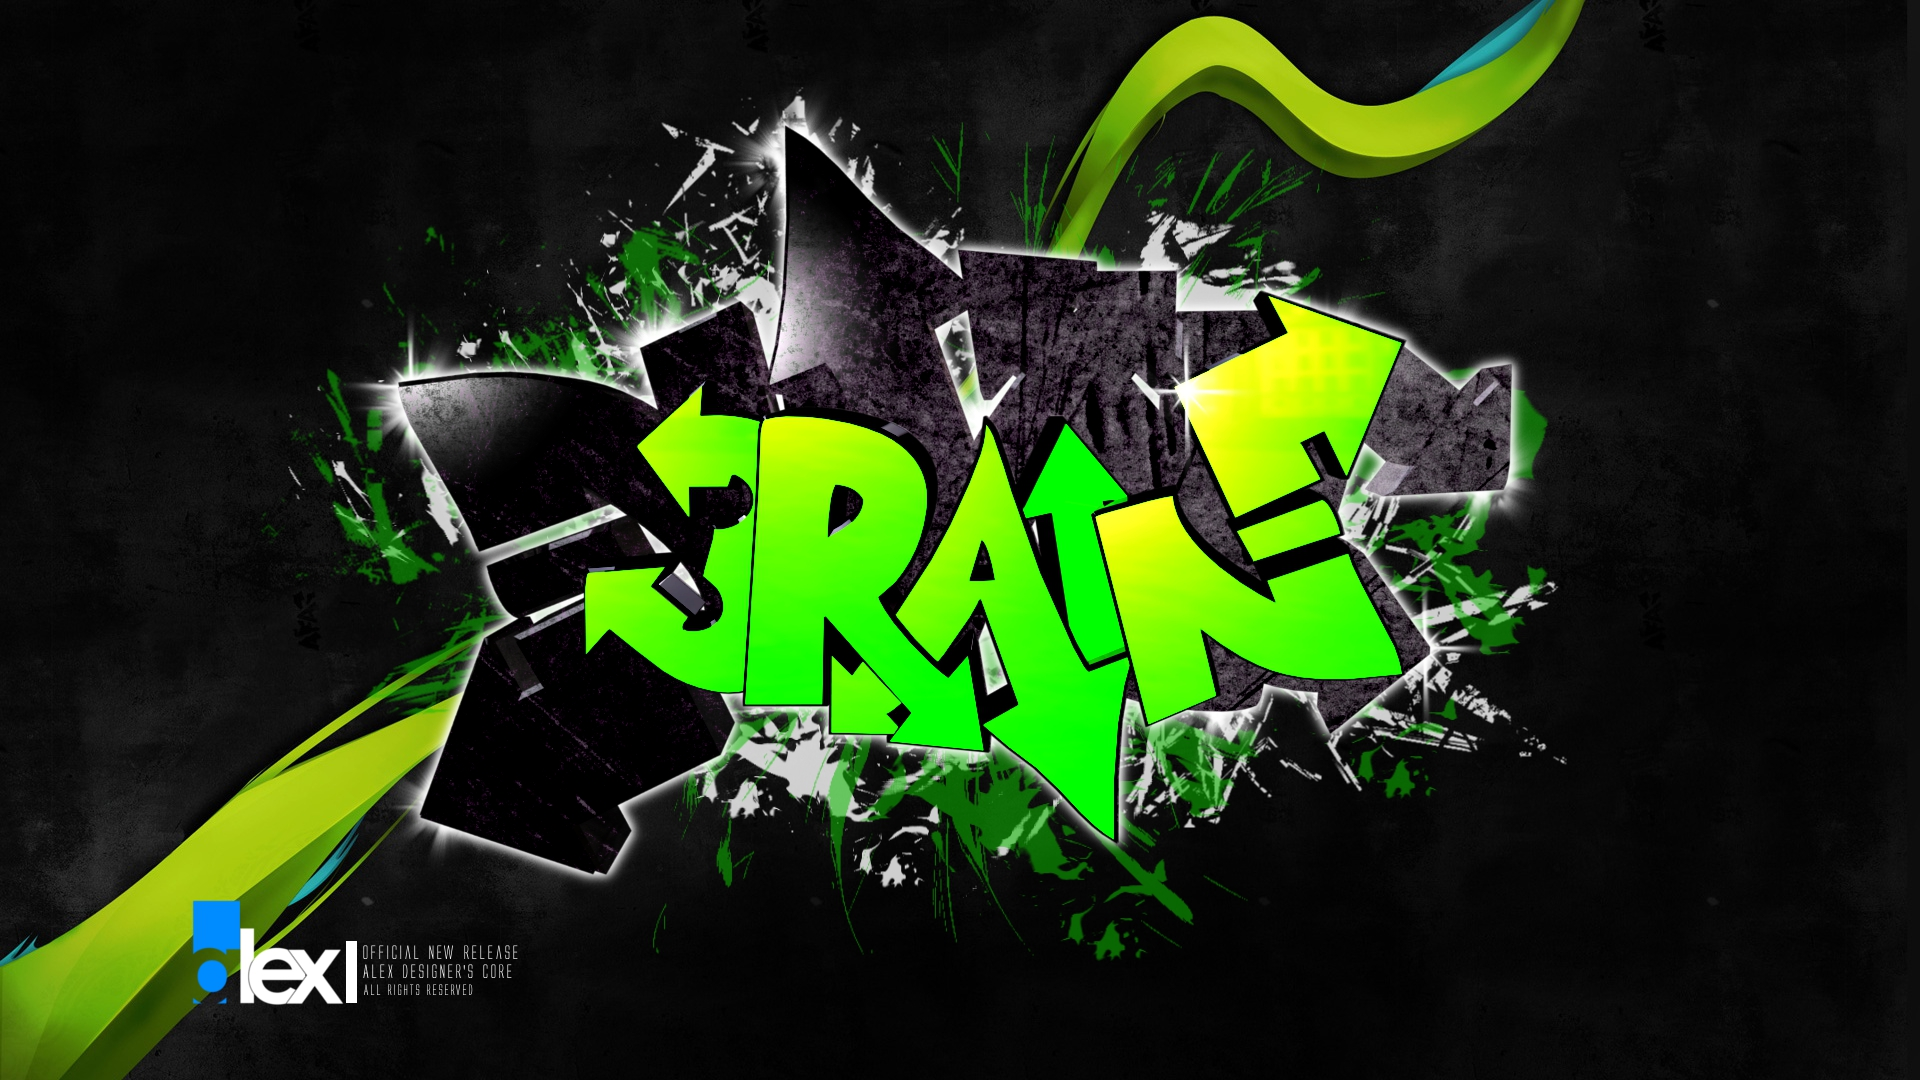 Cool HDQ Graffiti Pictures (Cool 46 HD Quality Wallpapers)